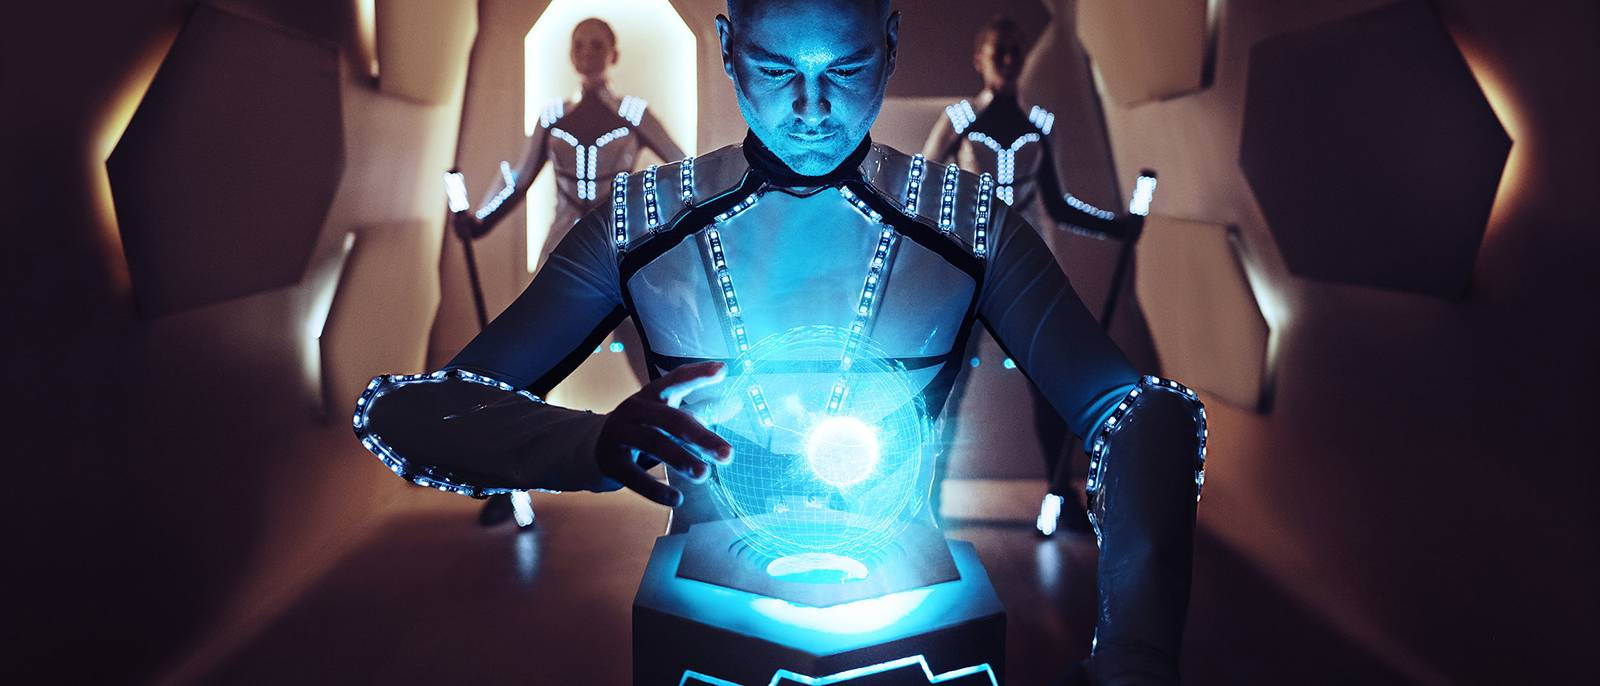 Pyroterra member posing on a photo in light show costume made by MIMO Space atelier